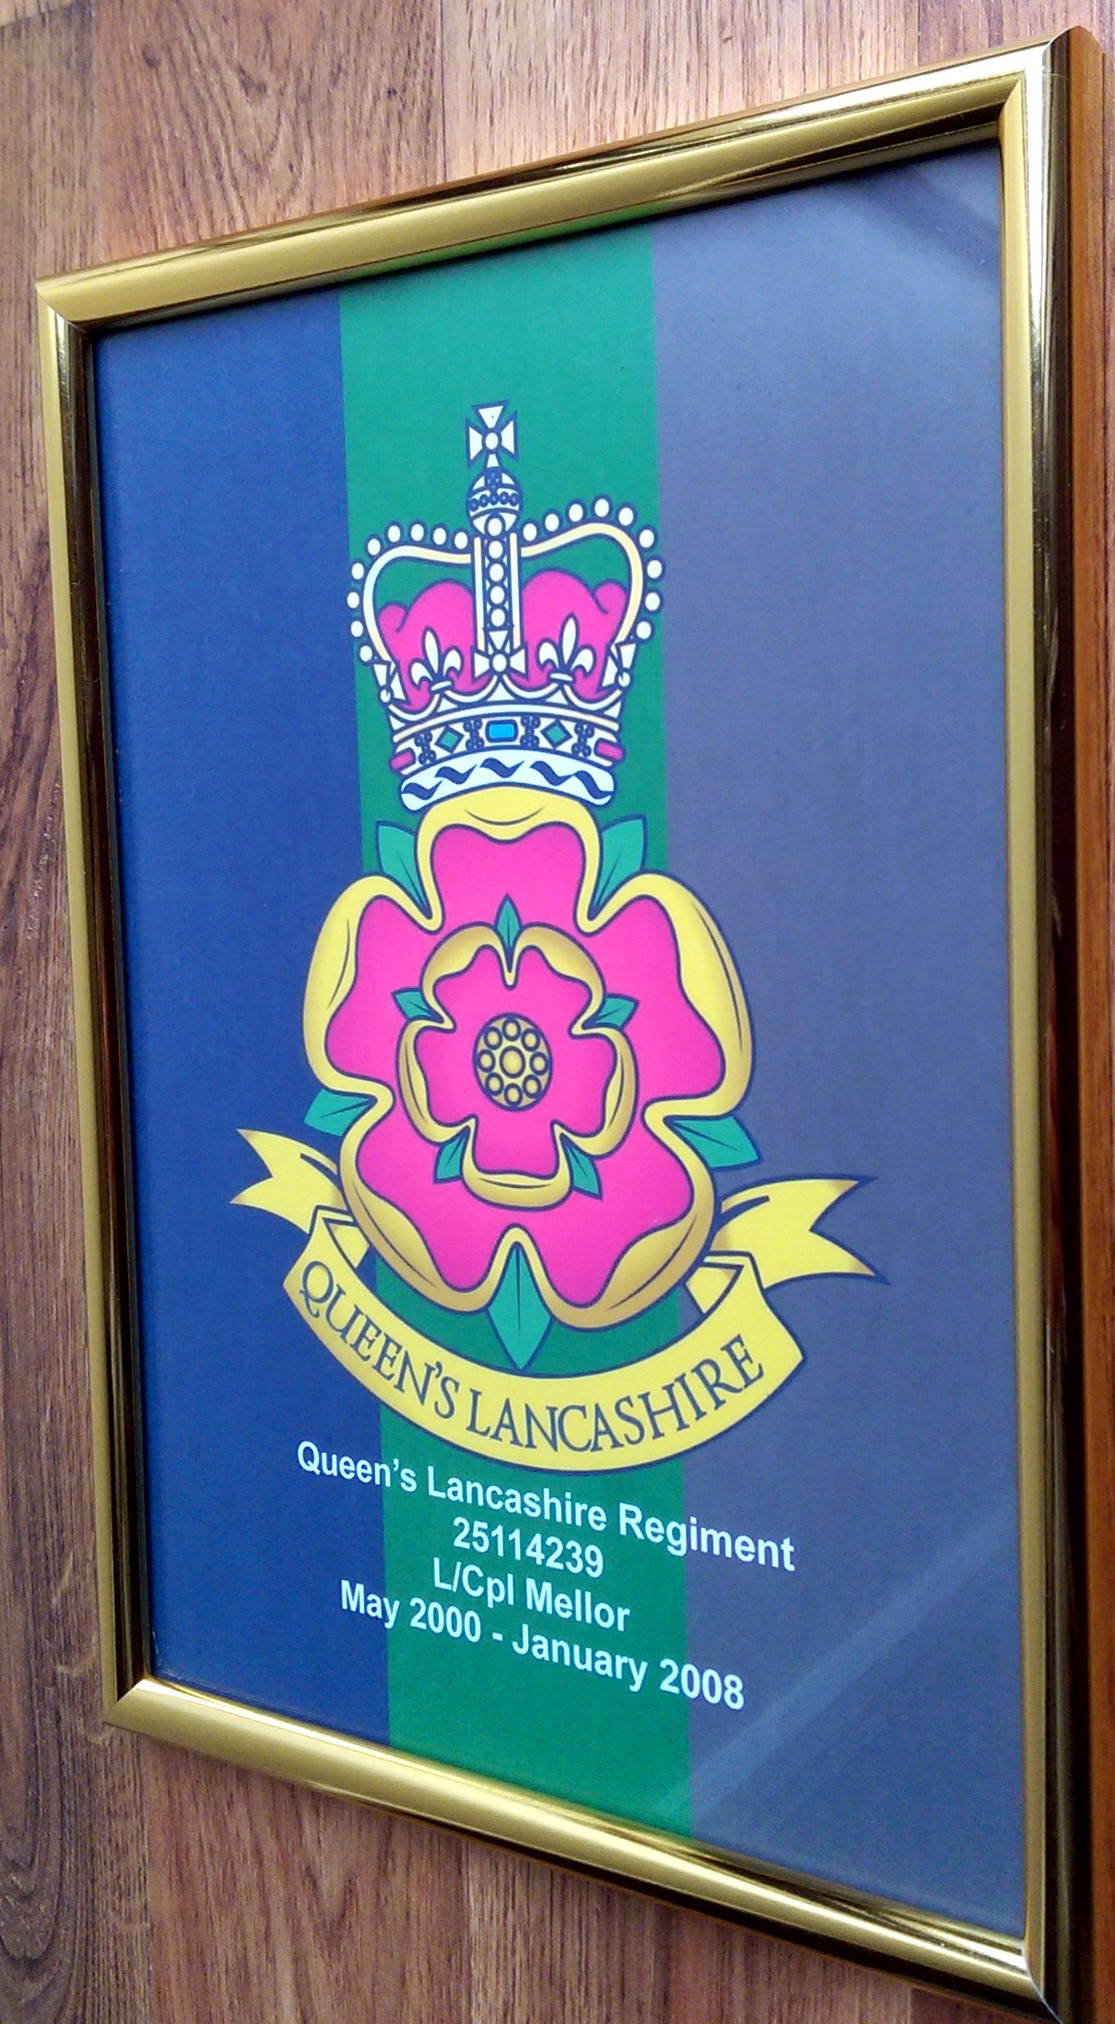 QLR Framed Logo With Regiment Number & Dates